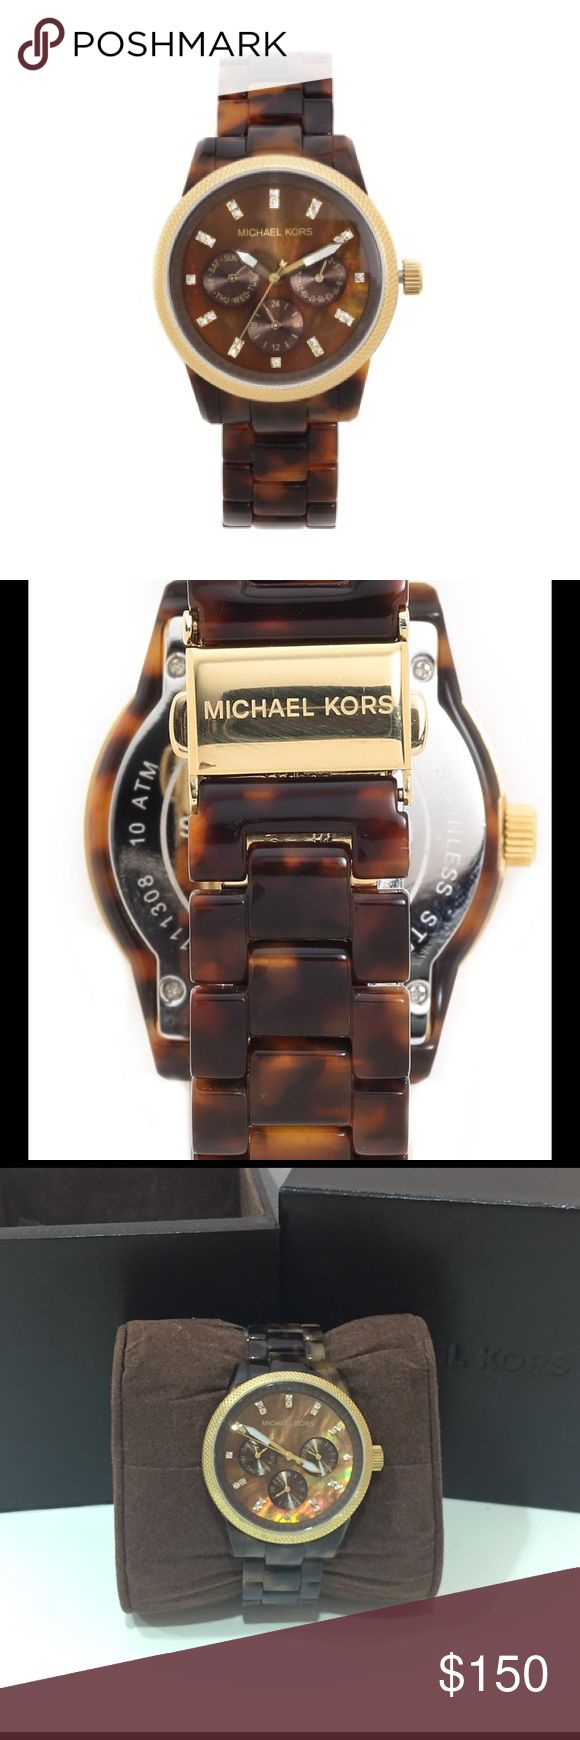 Michael Kors Tortoise Watch Perfect condition - worn once Michael Kors Tortoise Watch Michael Kors Accessories Watches